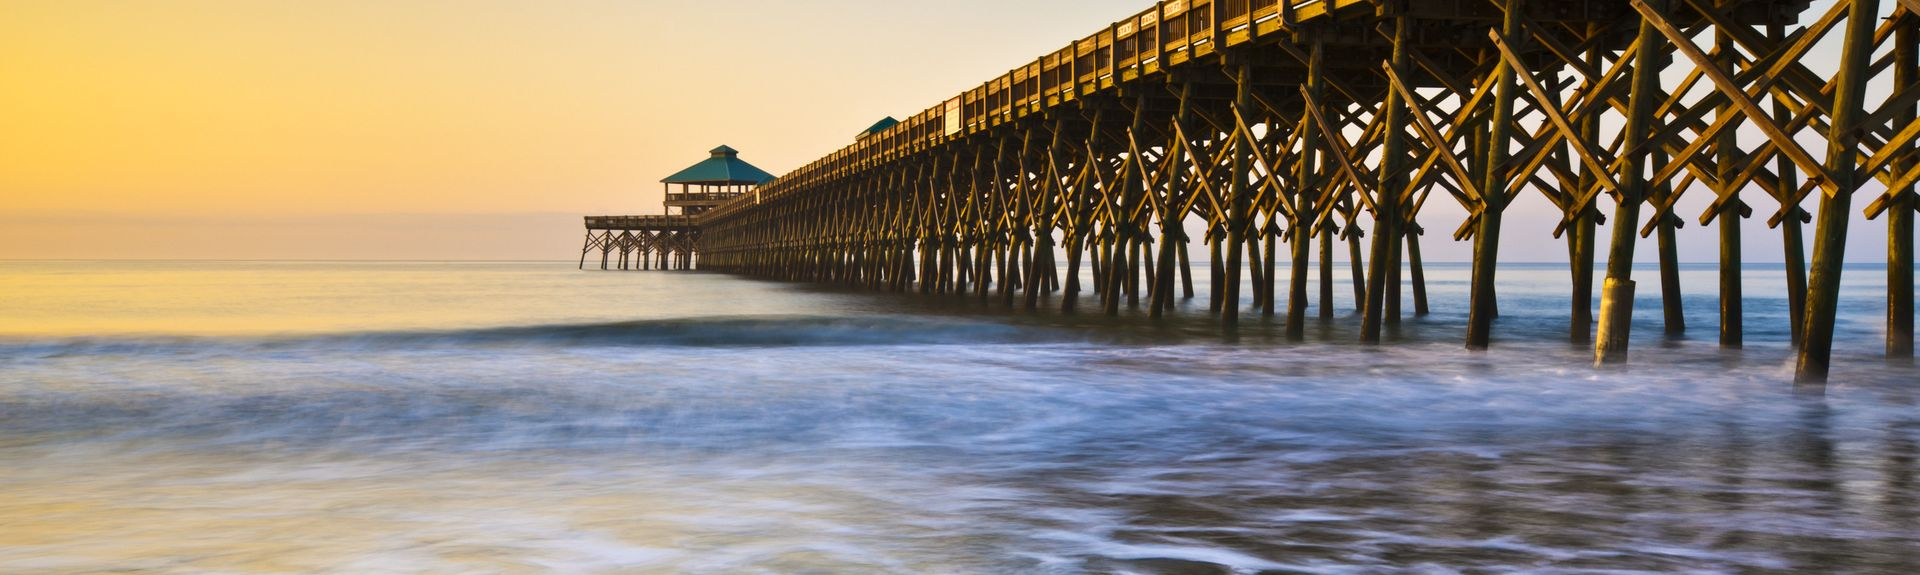 Folly Beach, South Carolina, Verenigde Staten